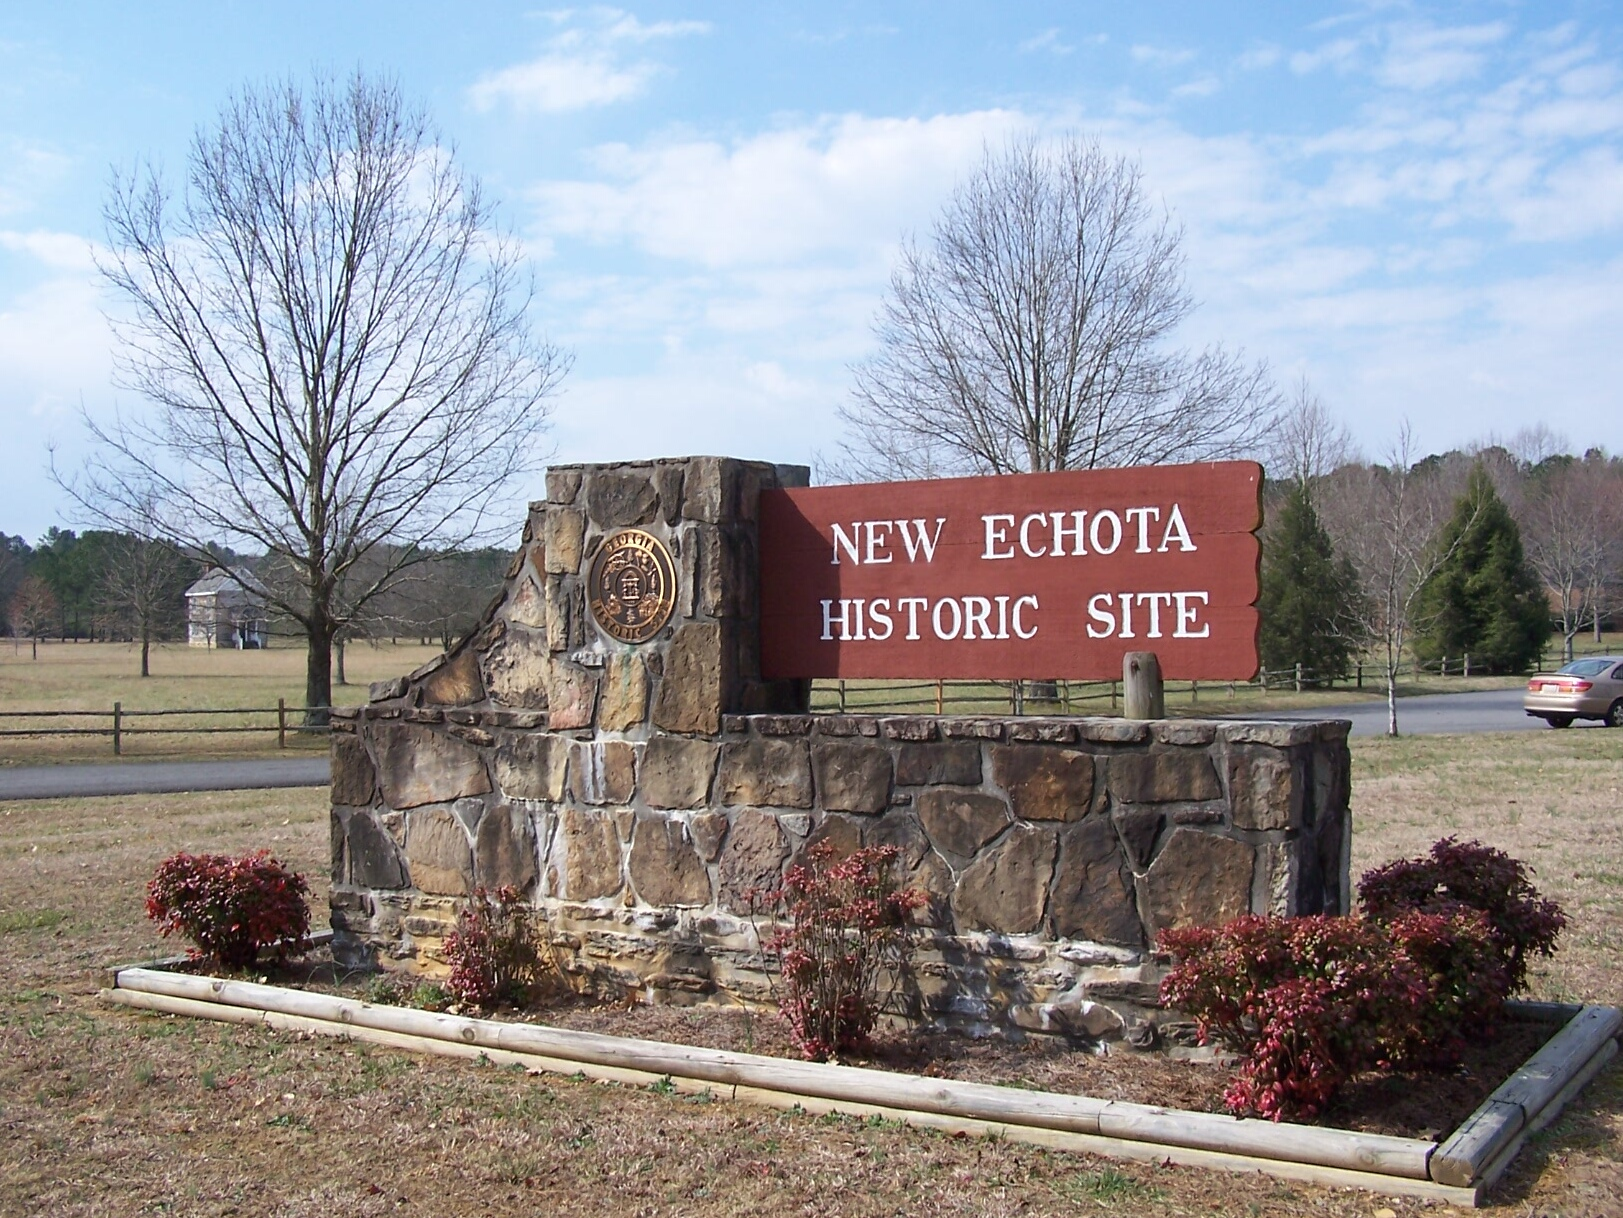 Entrance To New Echota Historic Site